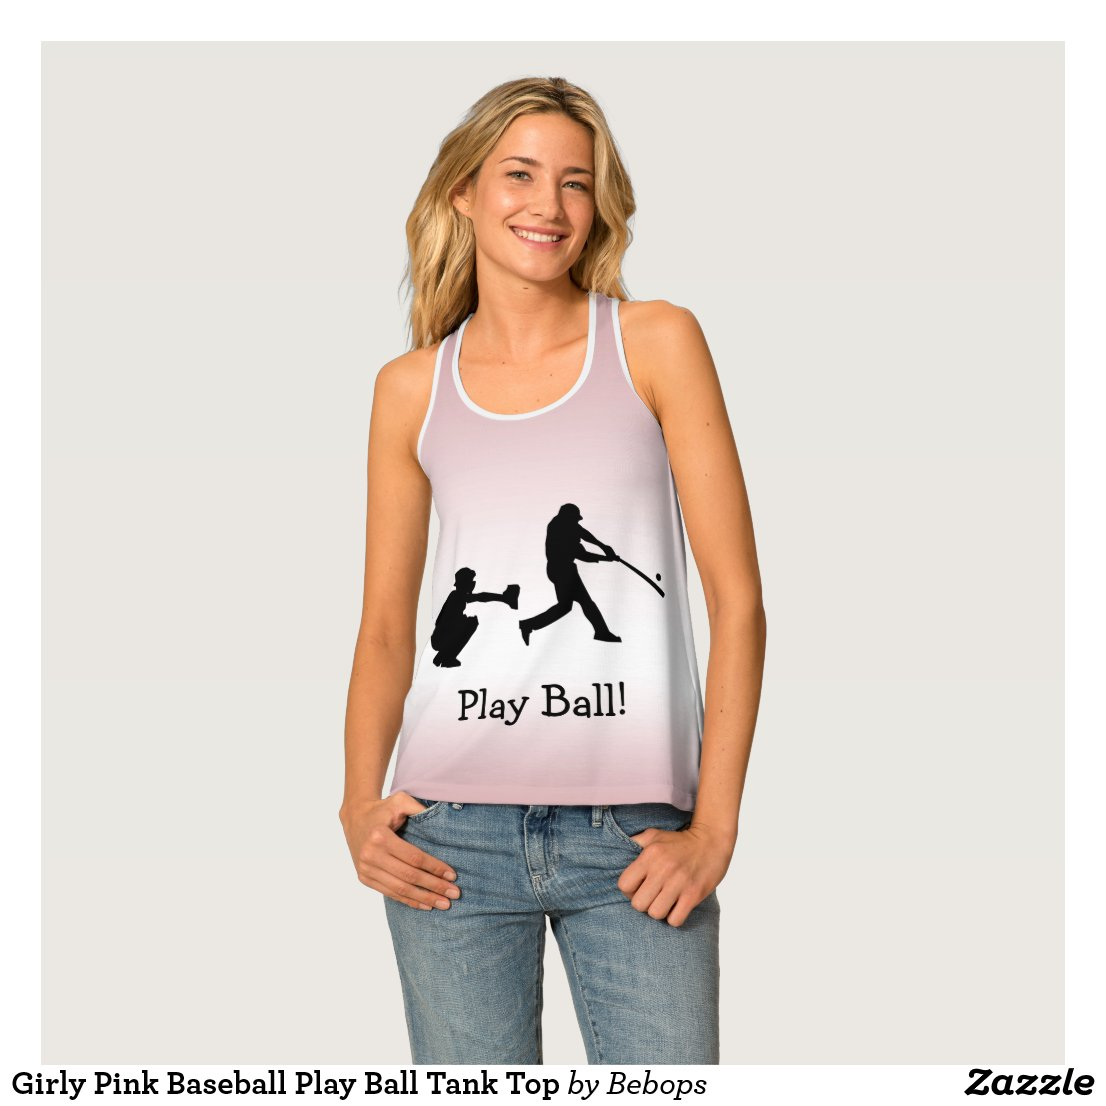 Girly Pink Baseball Play Ball Tank Top